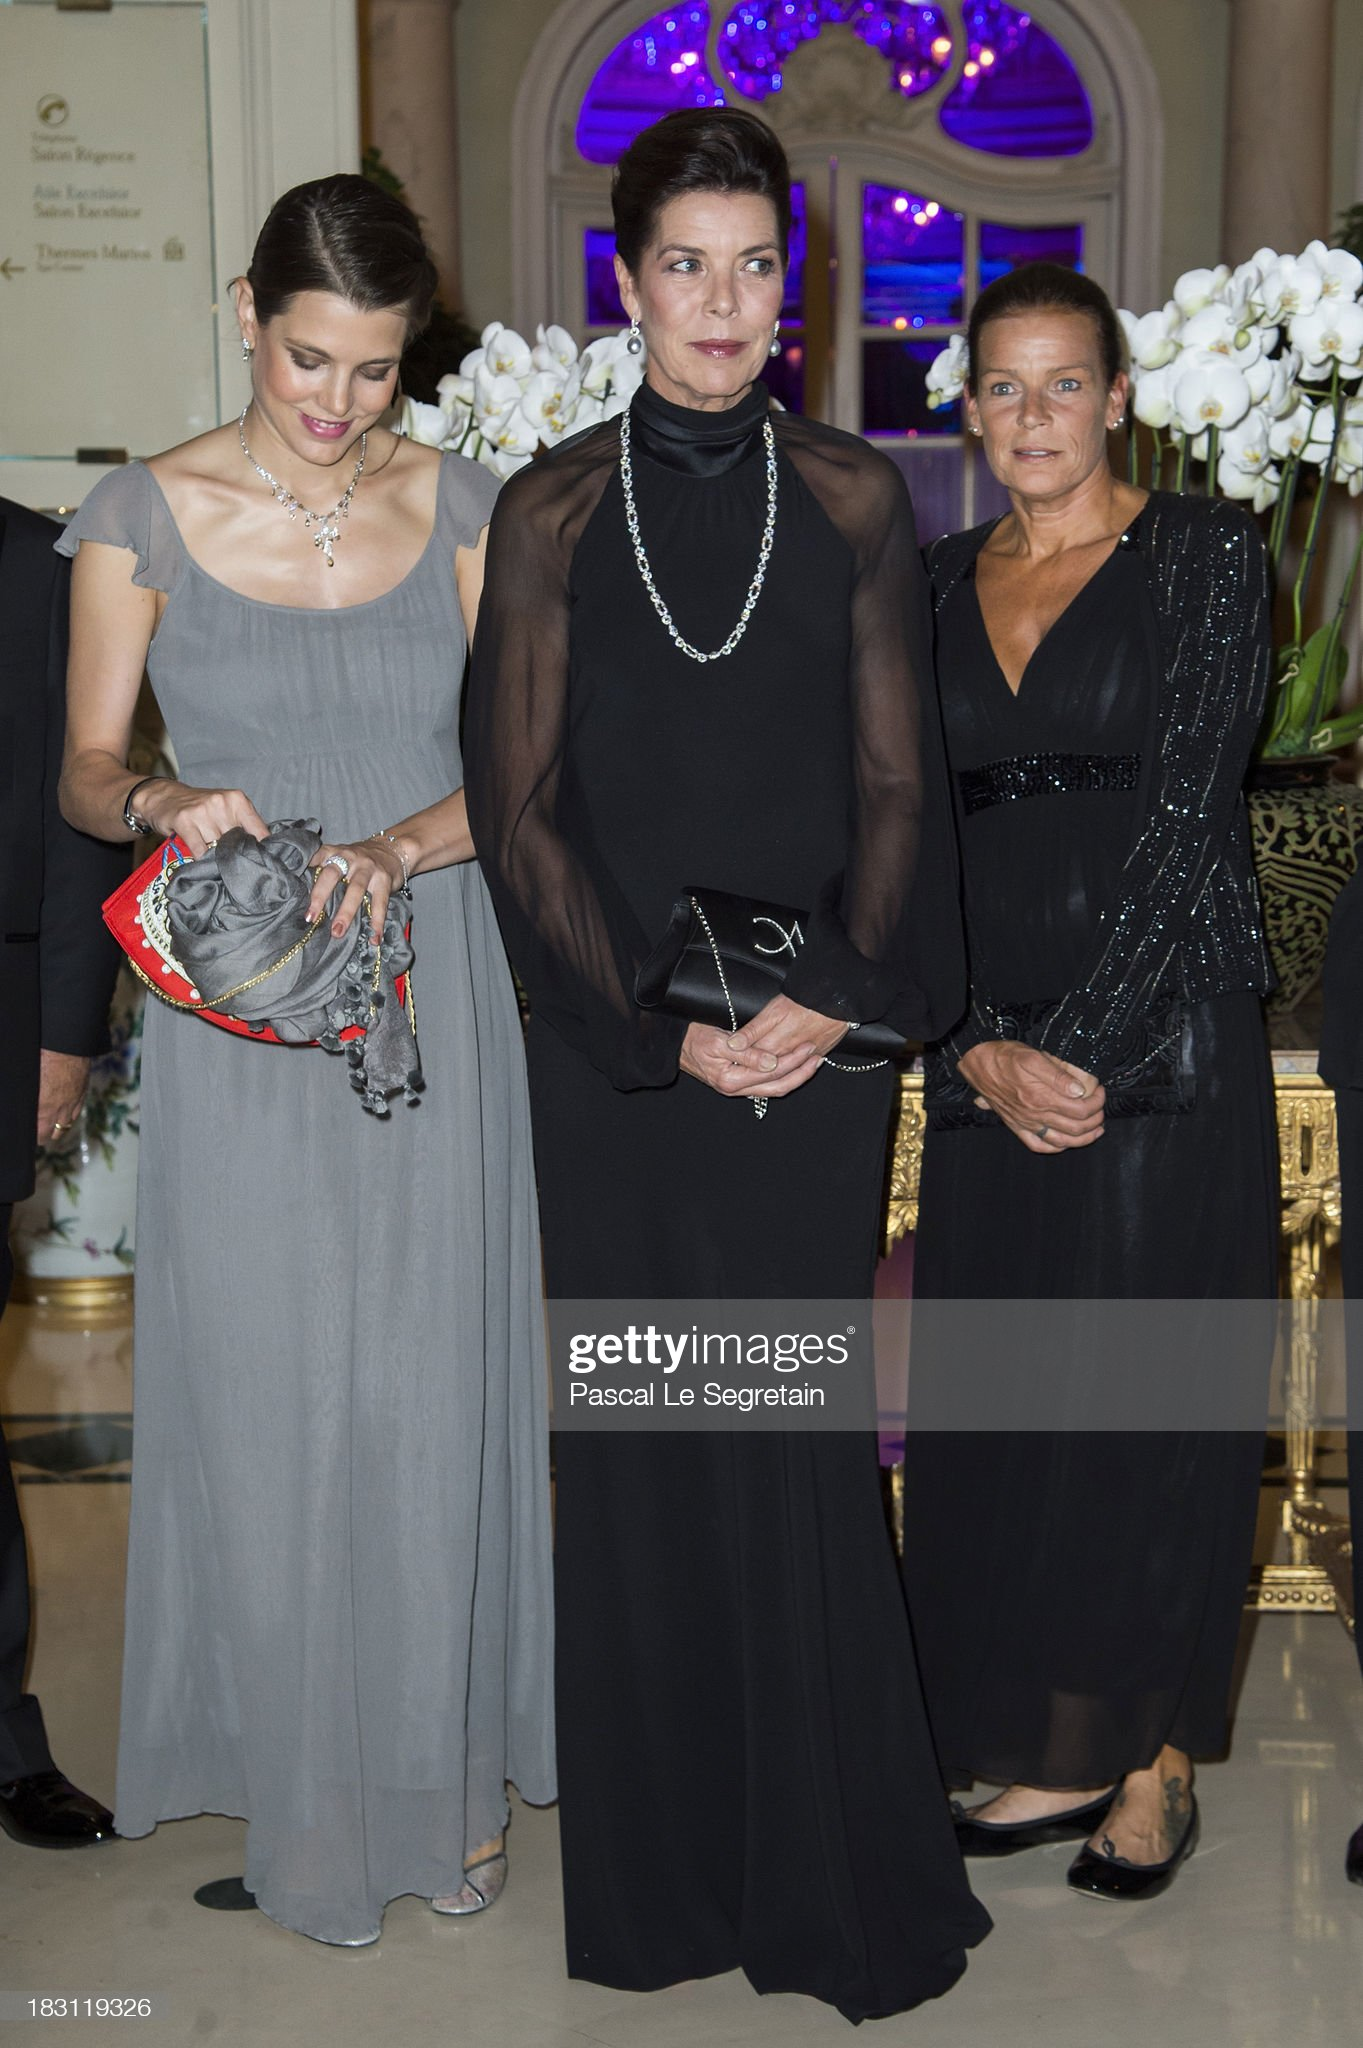 'AMADE' Celebrates Its 50th Anniversary : Arrivals At Hotel Hermitage In Monte-Carlo : News Photo